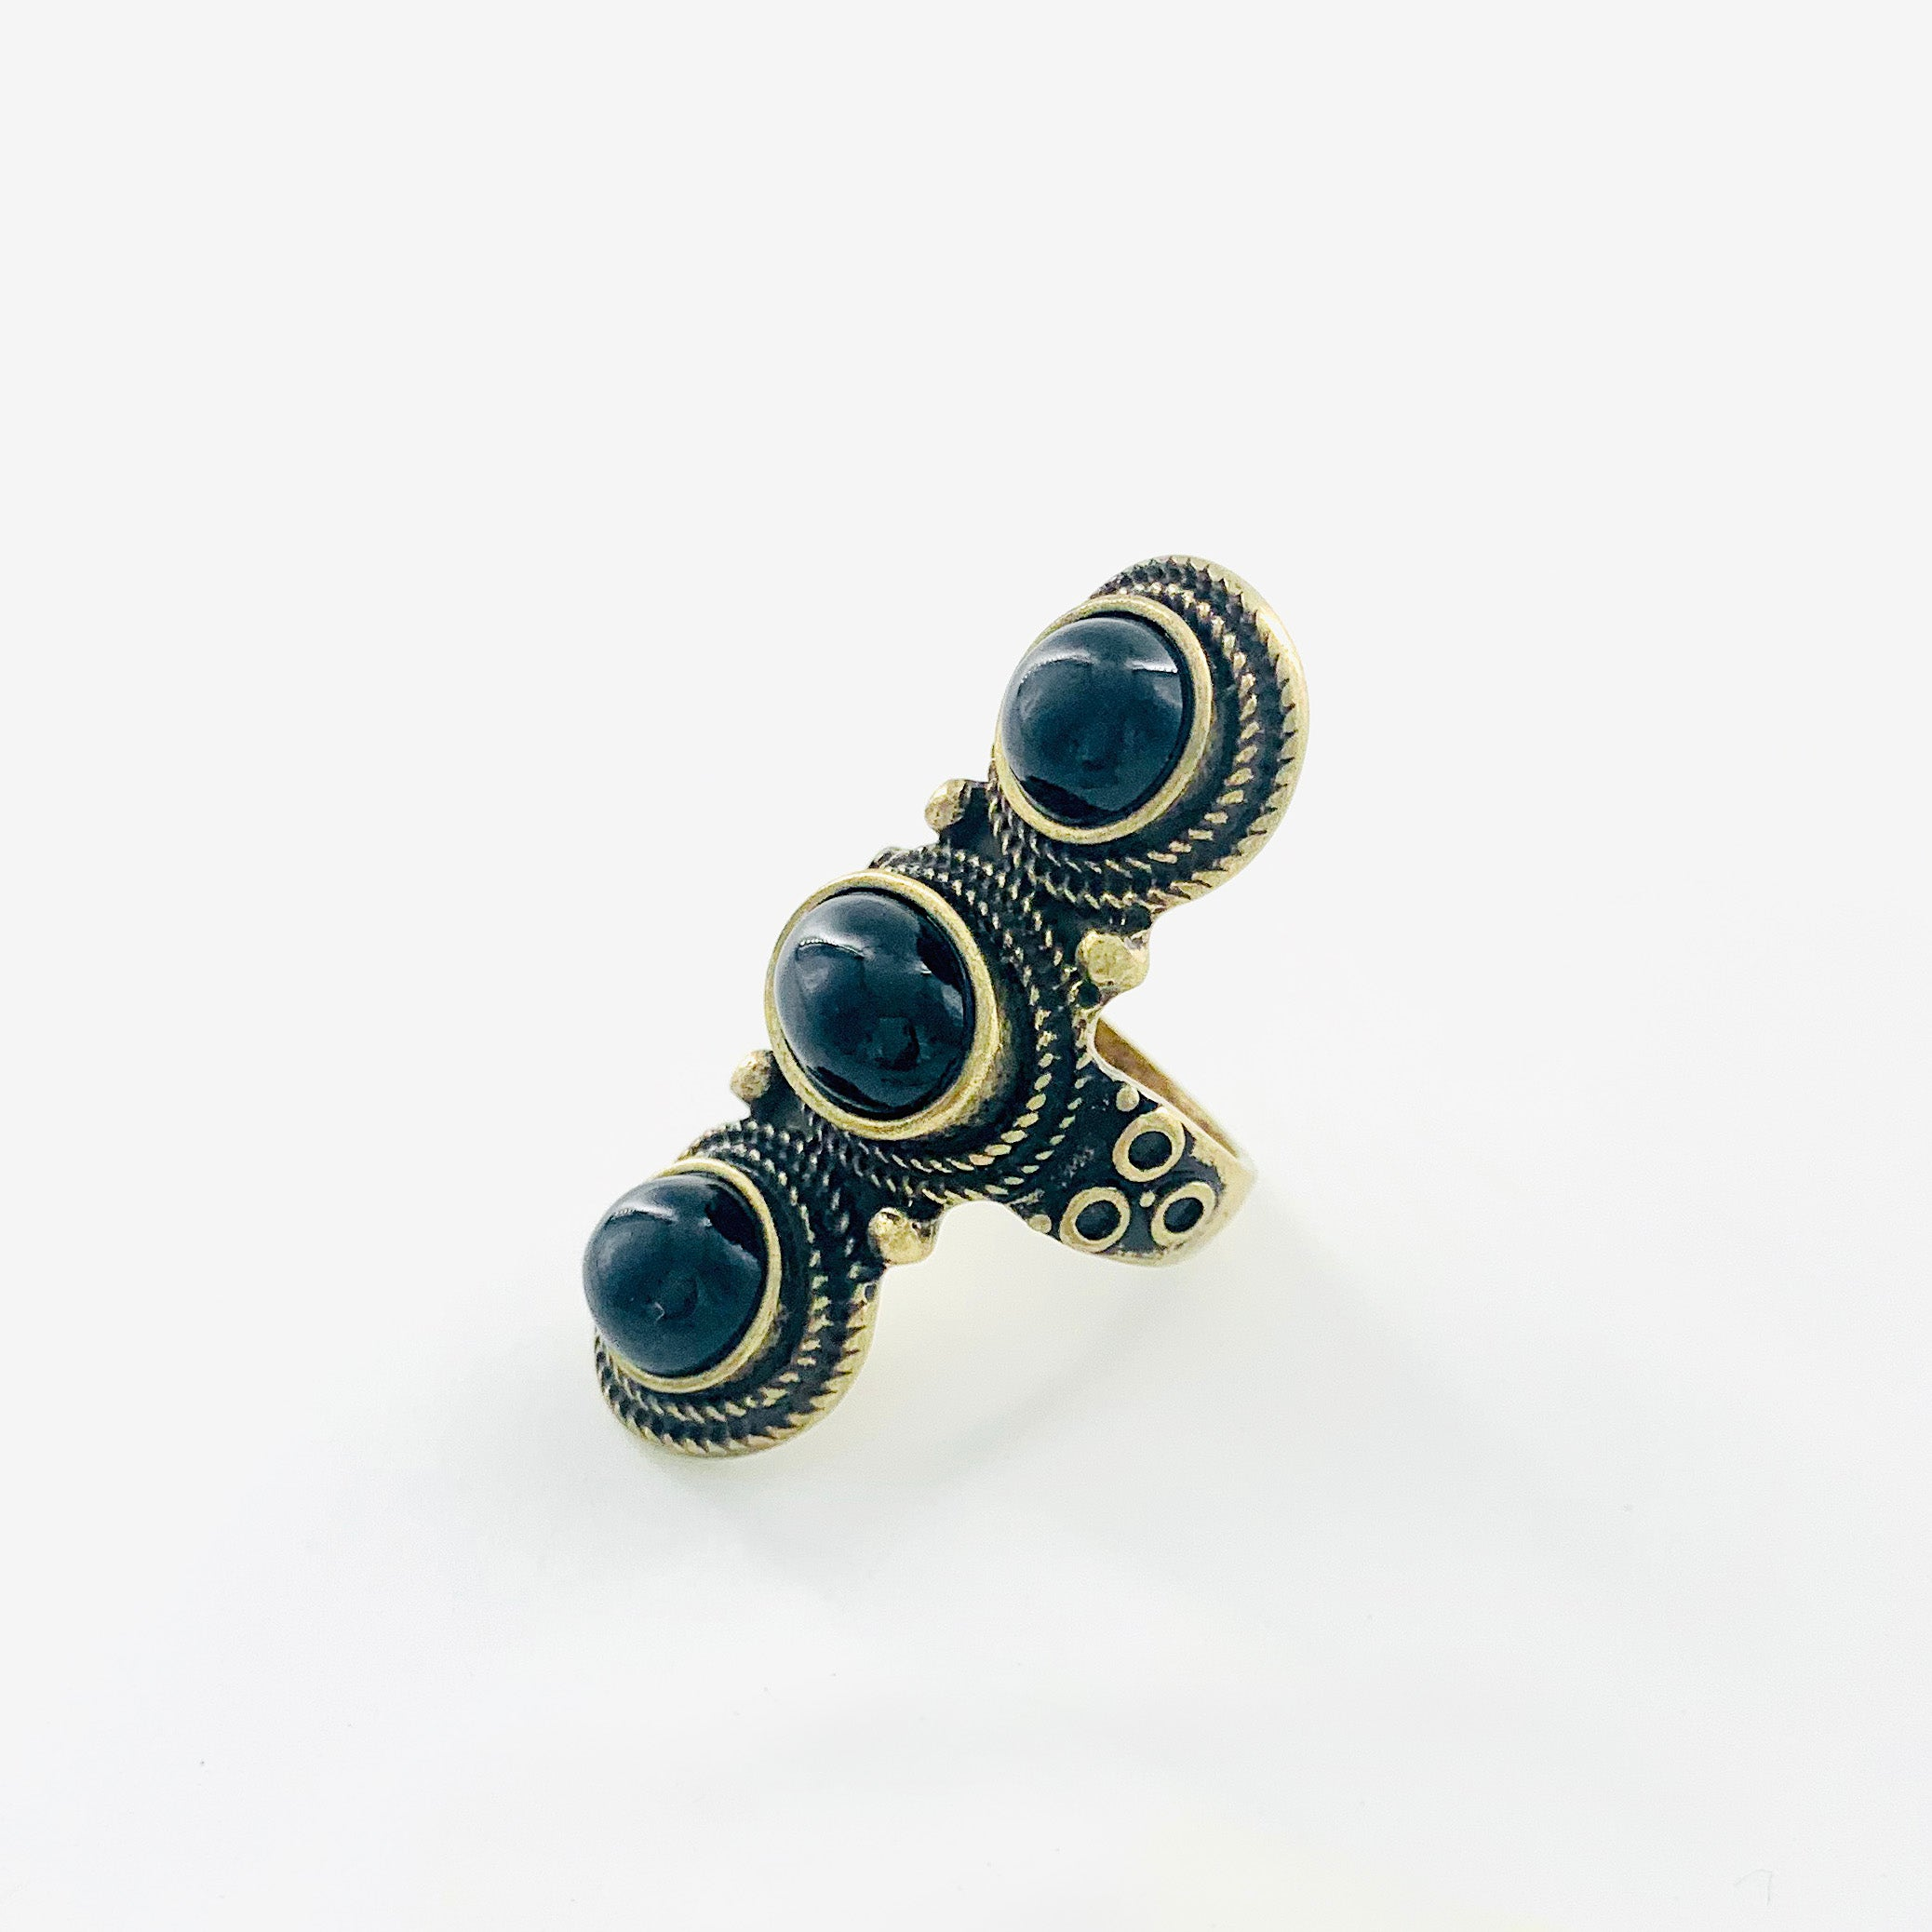 Vintage-styled ring with black beads